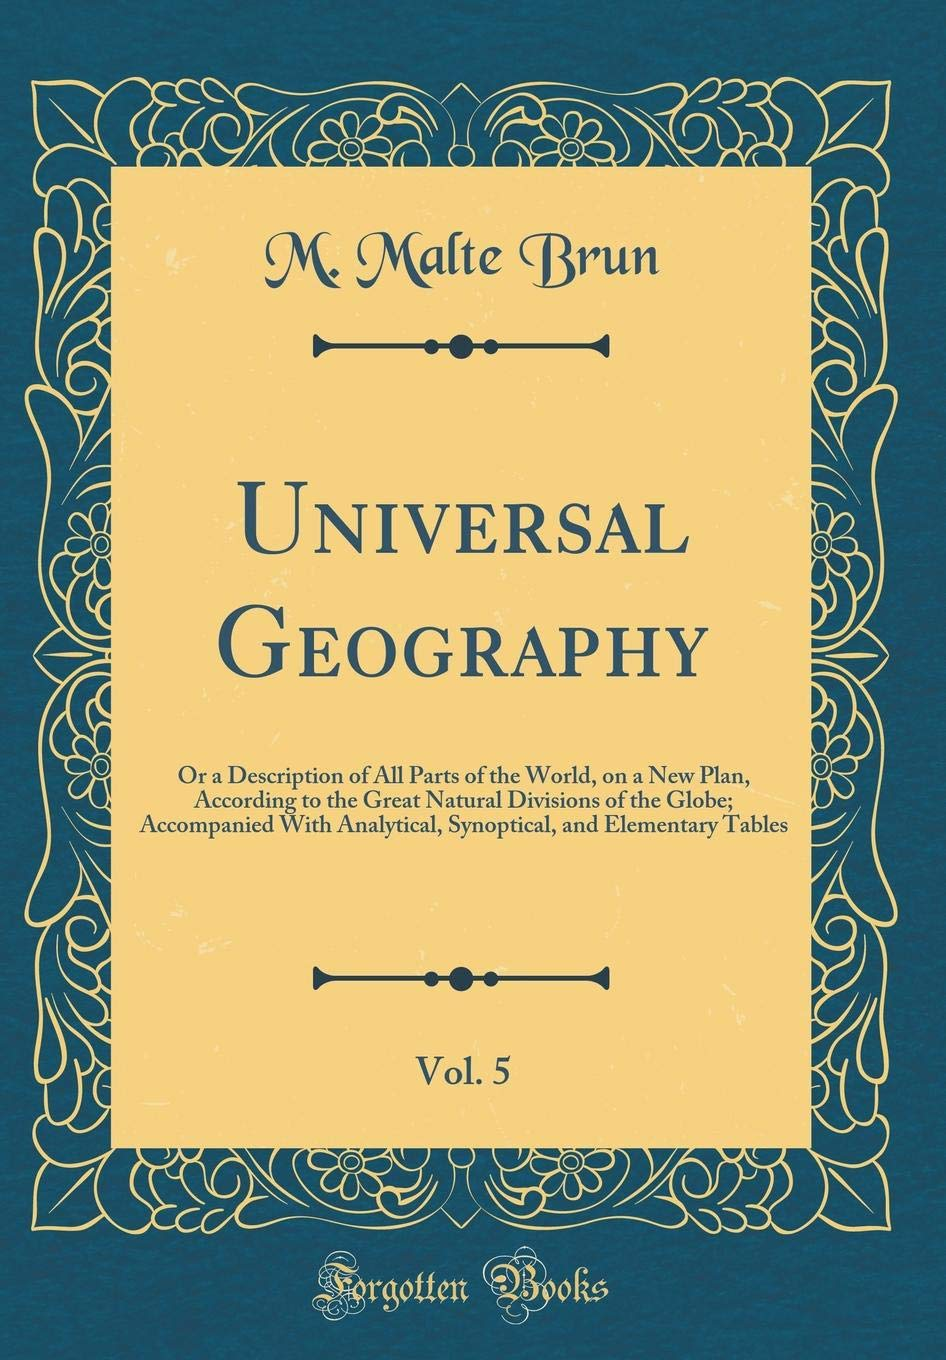 Read Online Universal Geography, Vol. 5: Or a Description of All Parts of the World, on a New Plan, According to the Great Natural Divisions of the Globe; ... and Elementary Tables (Classic Reprint) ebook